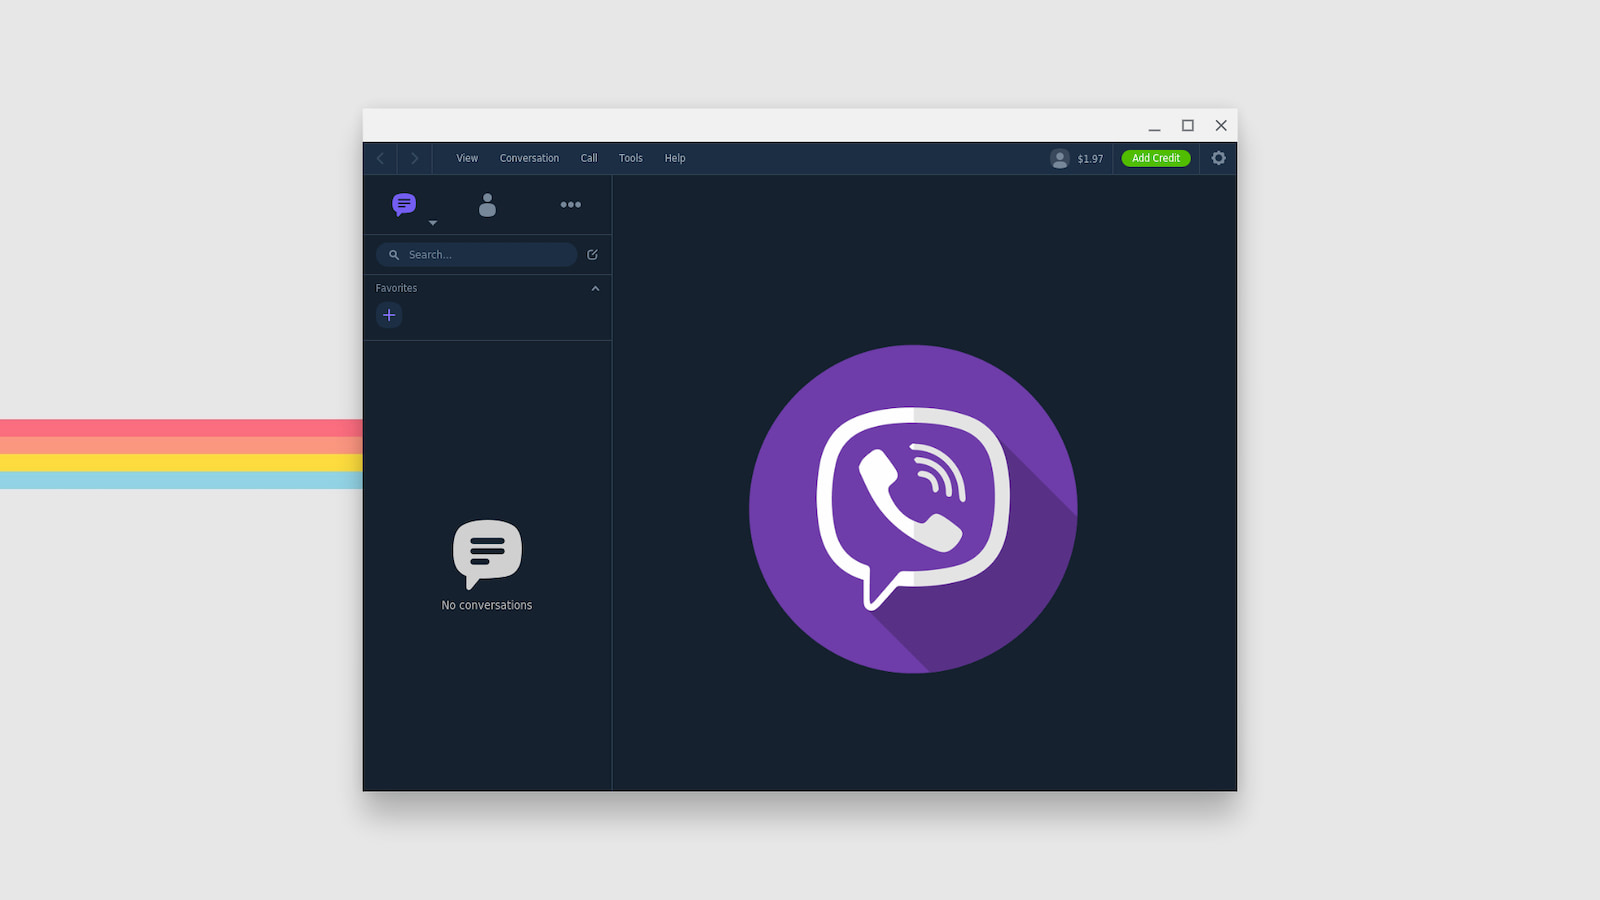 Need Viber on your Chromebook? For now, Linux is probably the answer